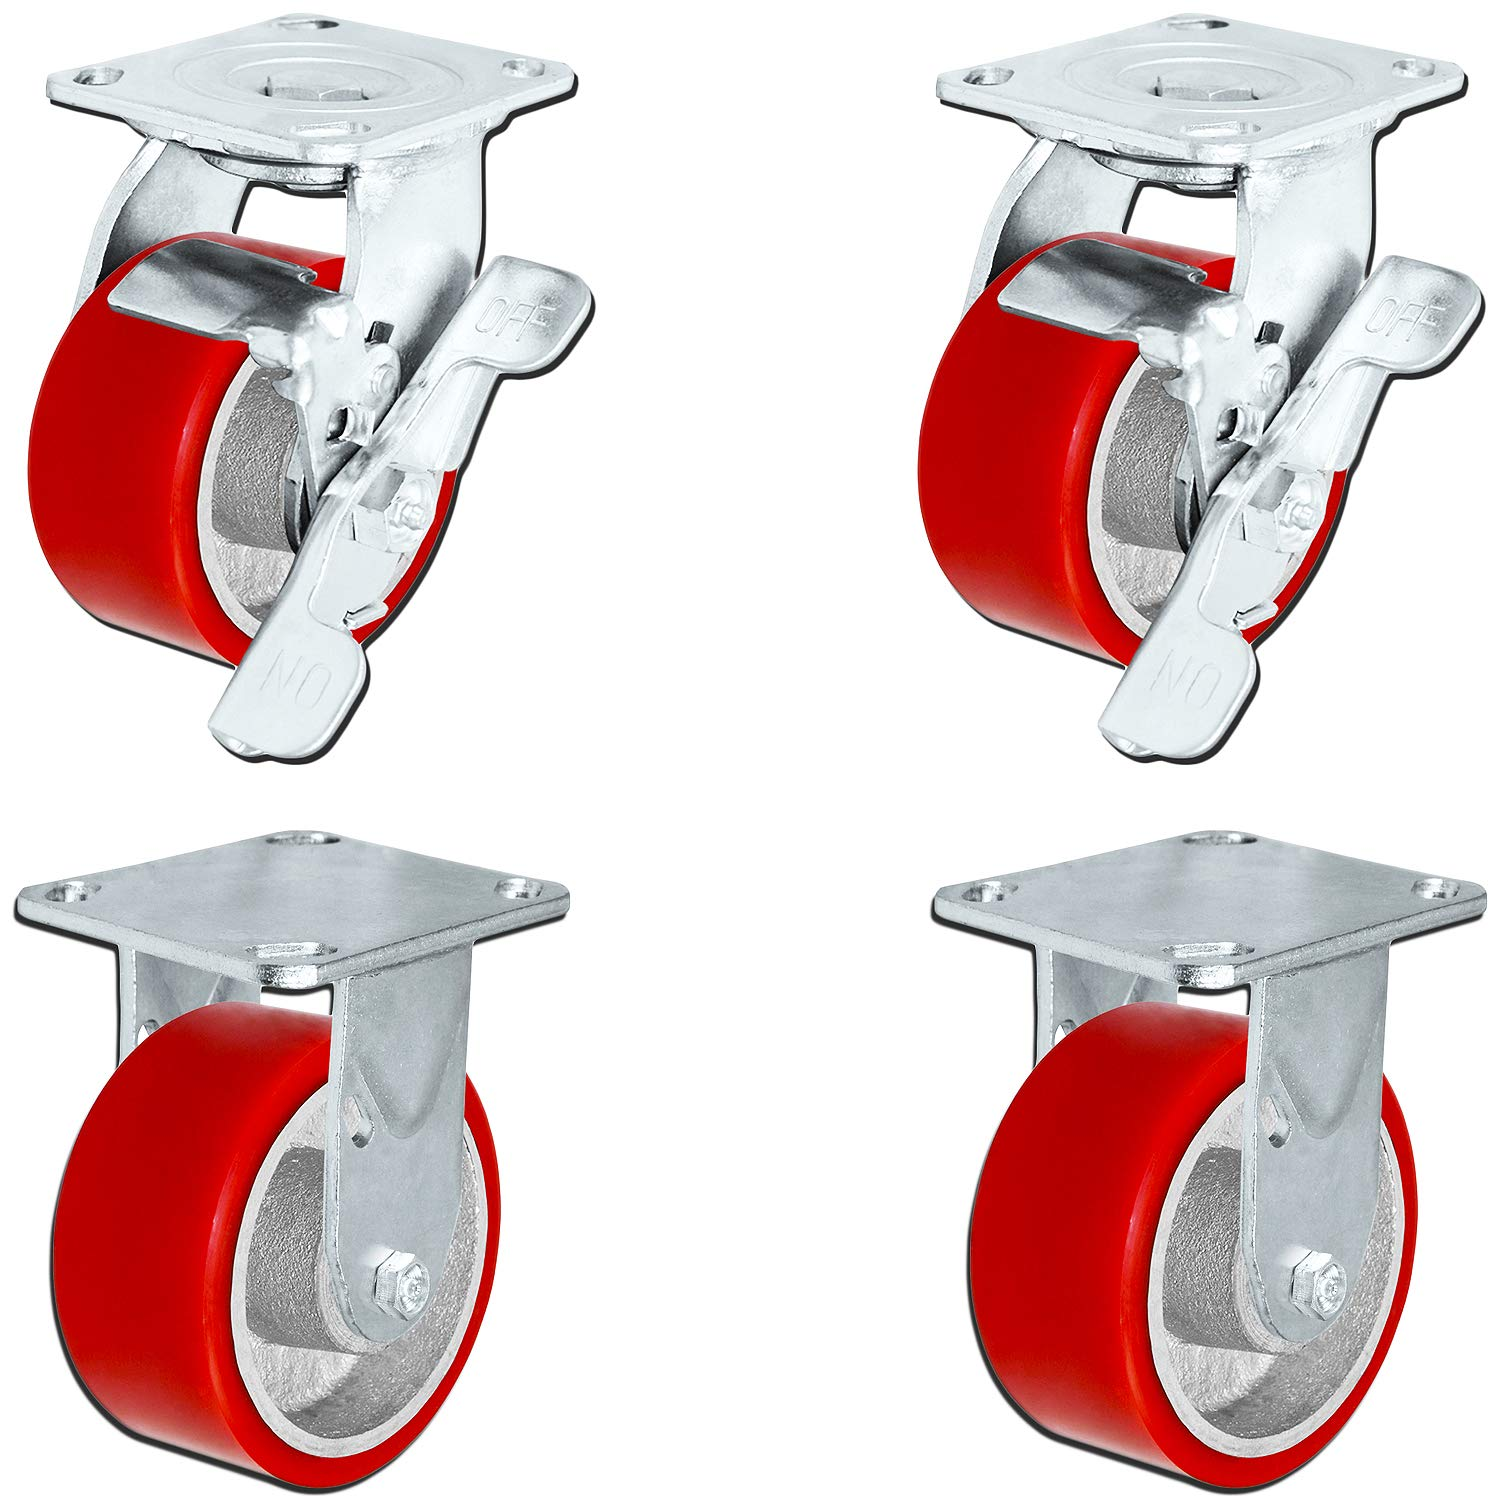 5 in. x 2 in. Heavy Duty Caster Set with Red Polyurethane on Steel Wheels, 1,100 pounds Capacity per Caster, 5'' Size (Set of 4), Toolbox casters